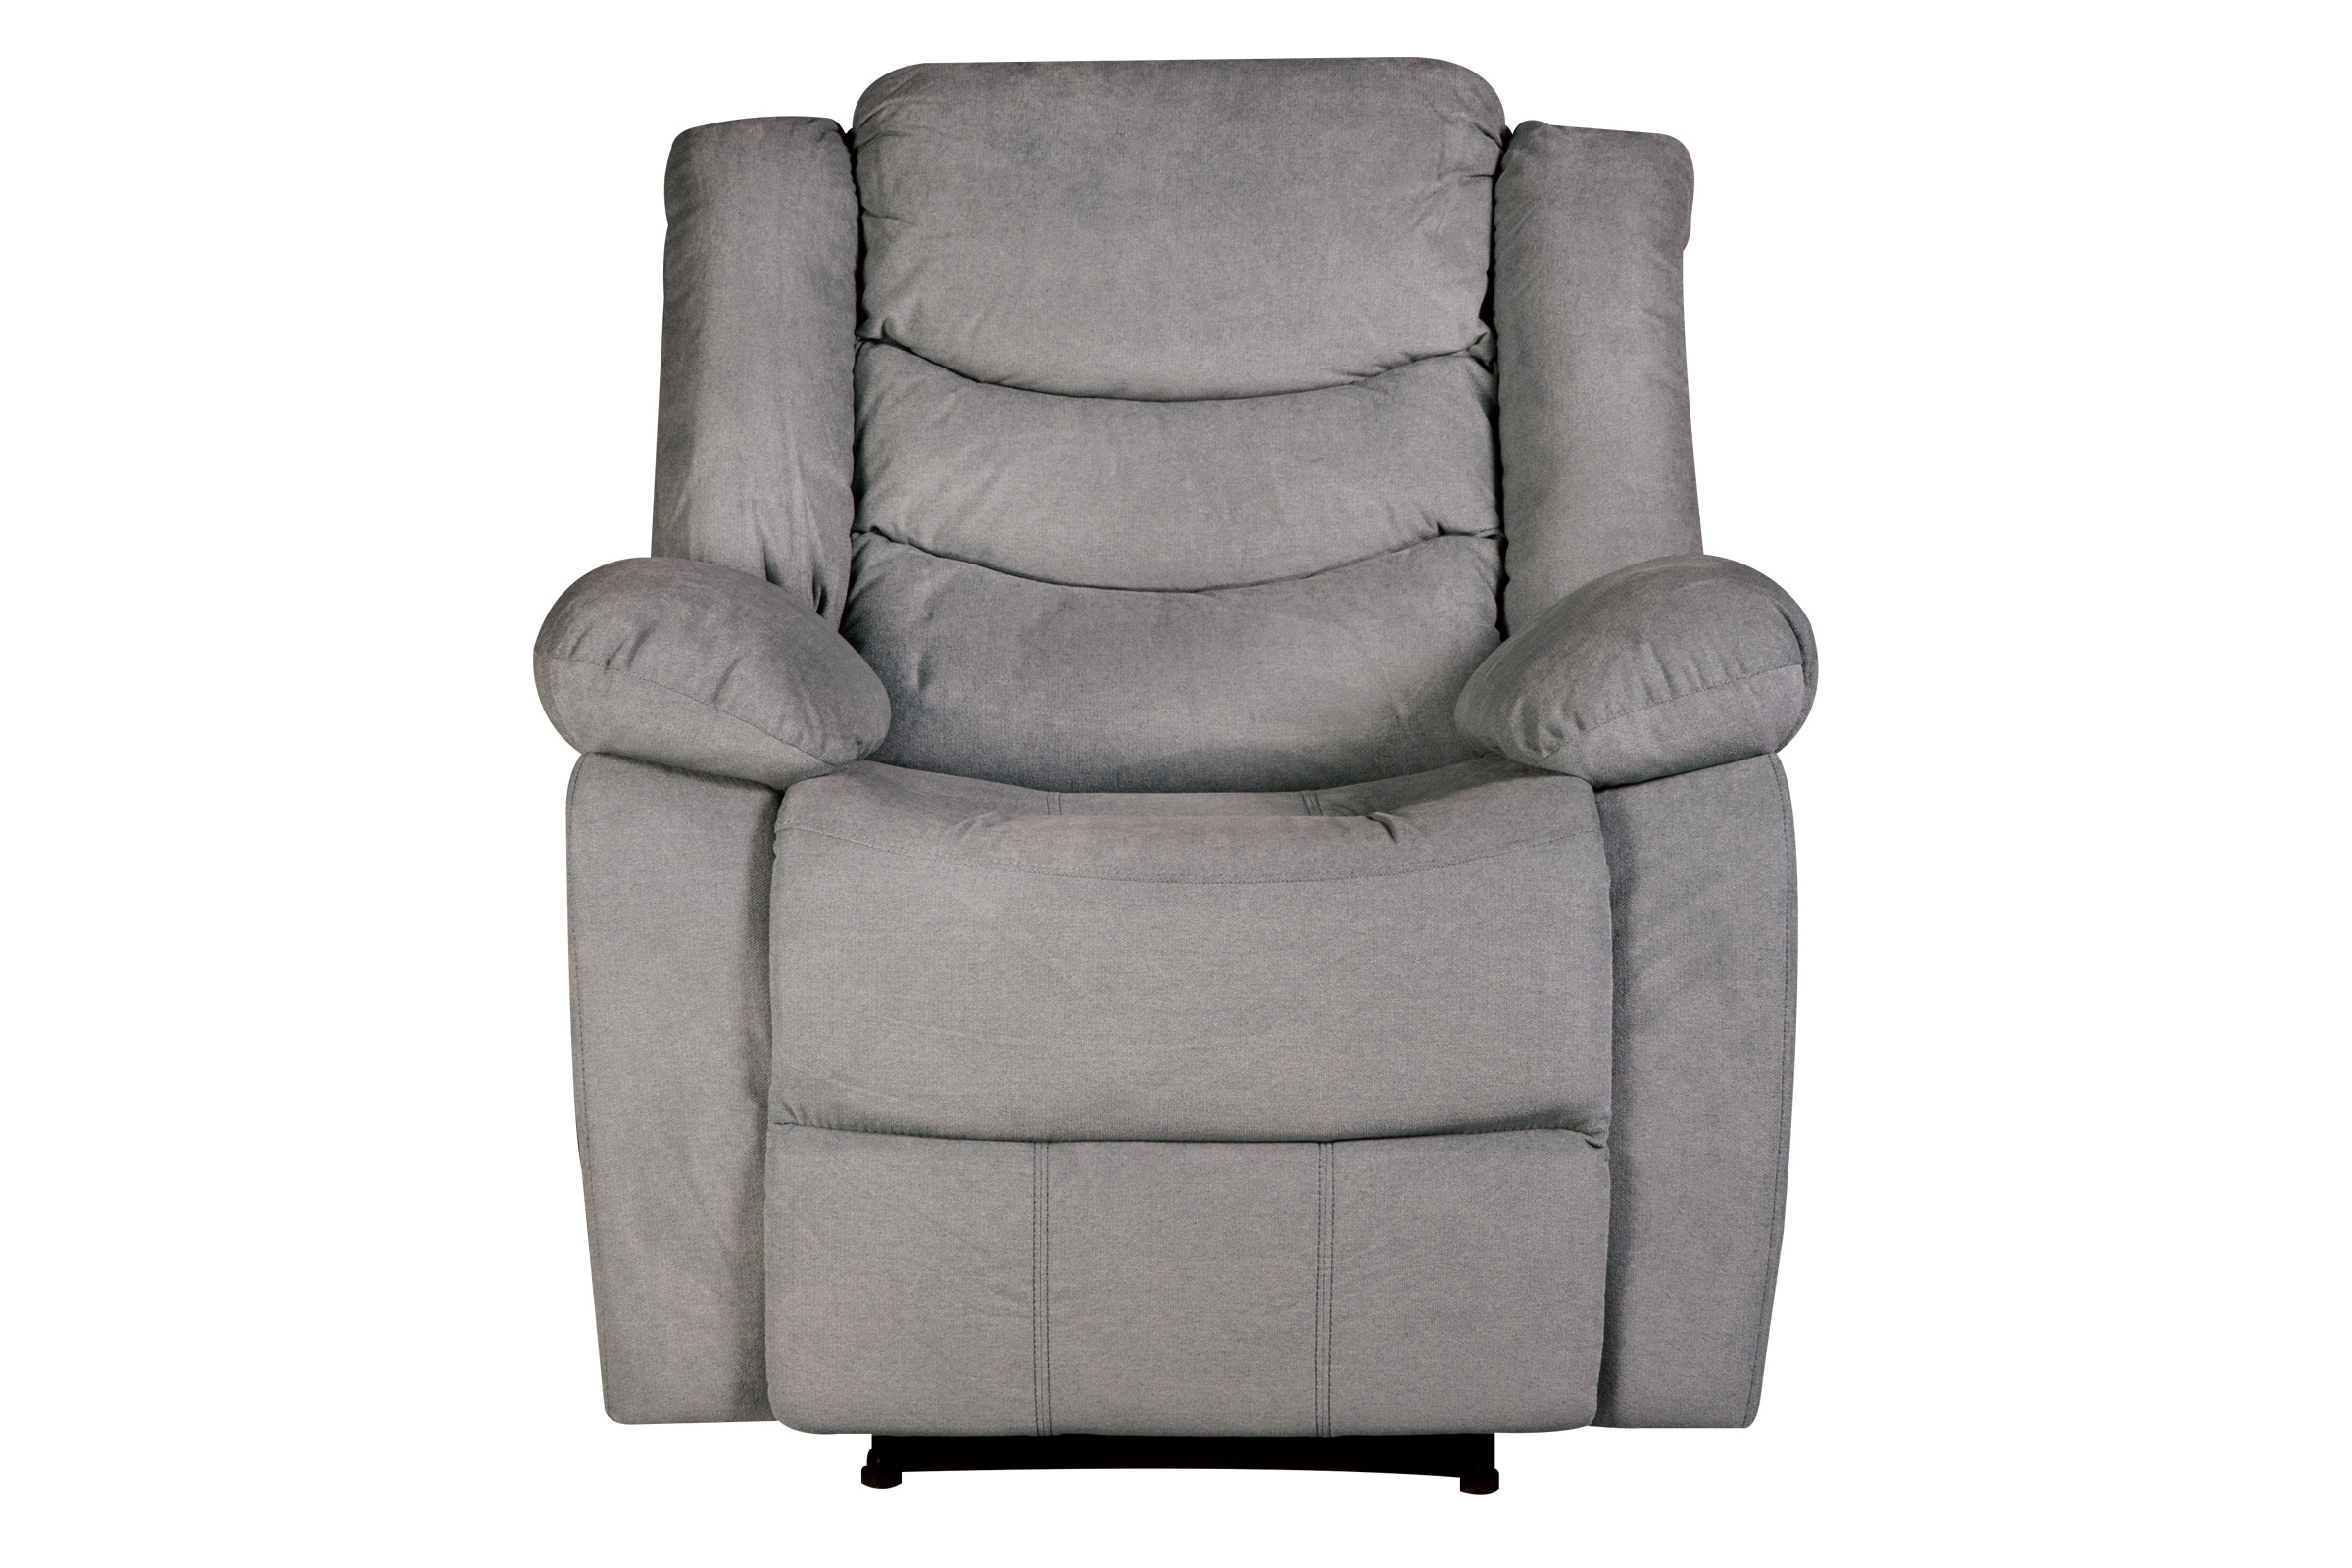 Shop Recliners Chairs & Chaises at Gardner White